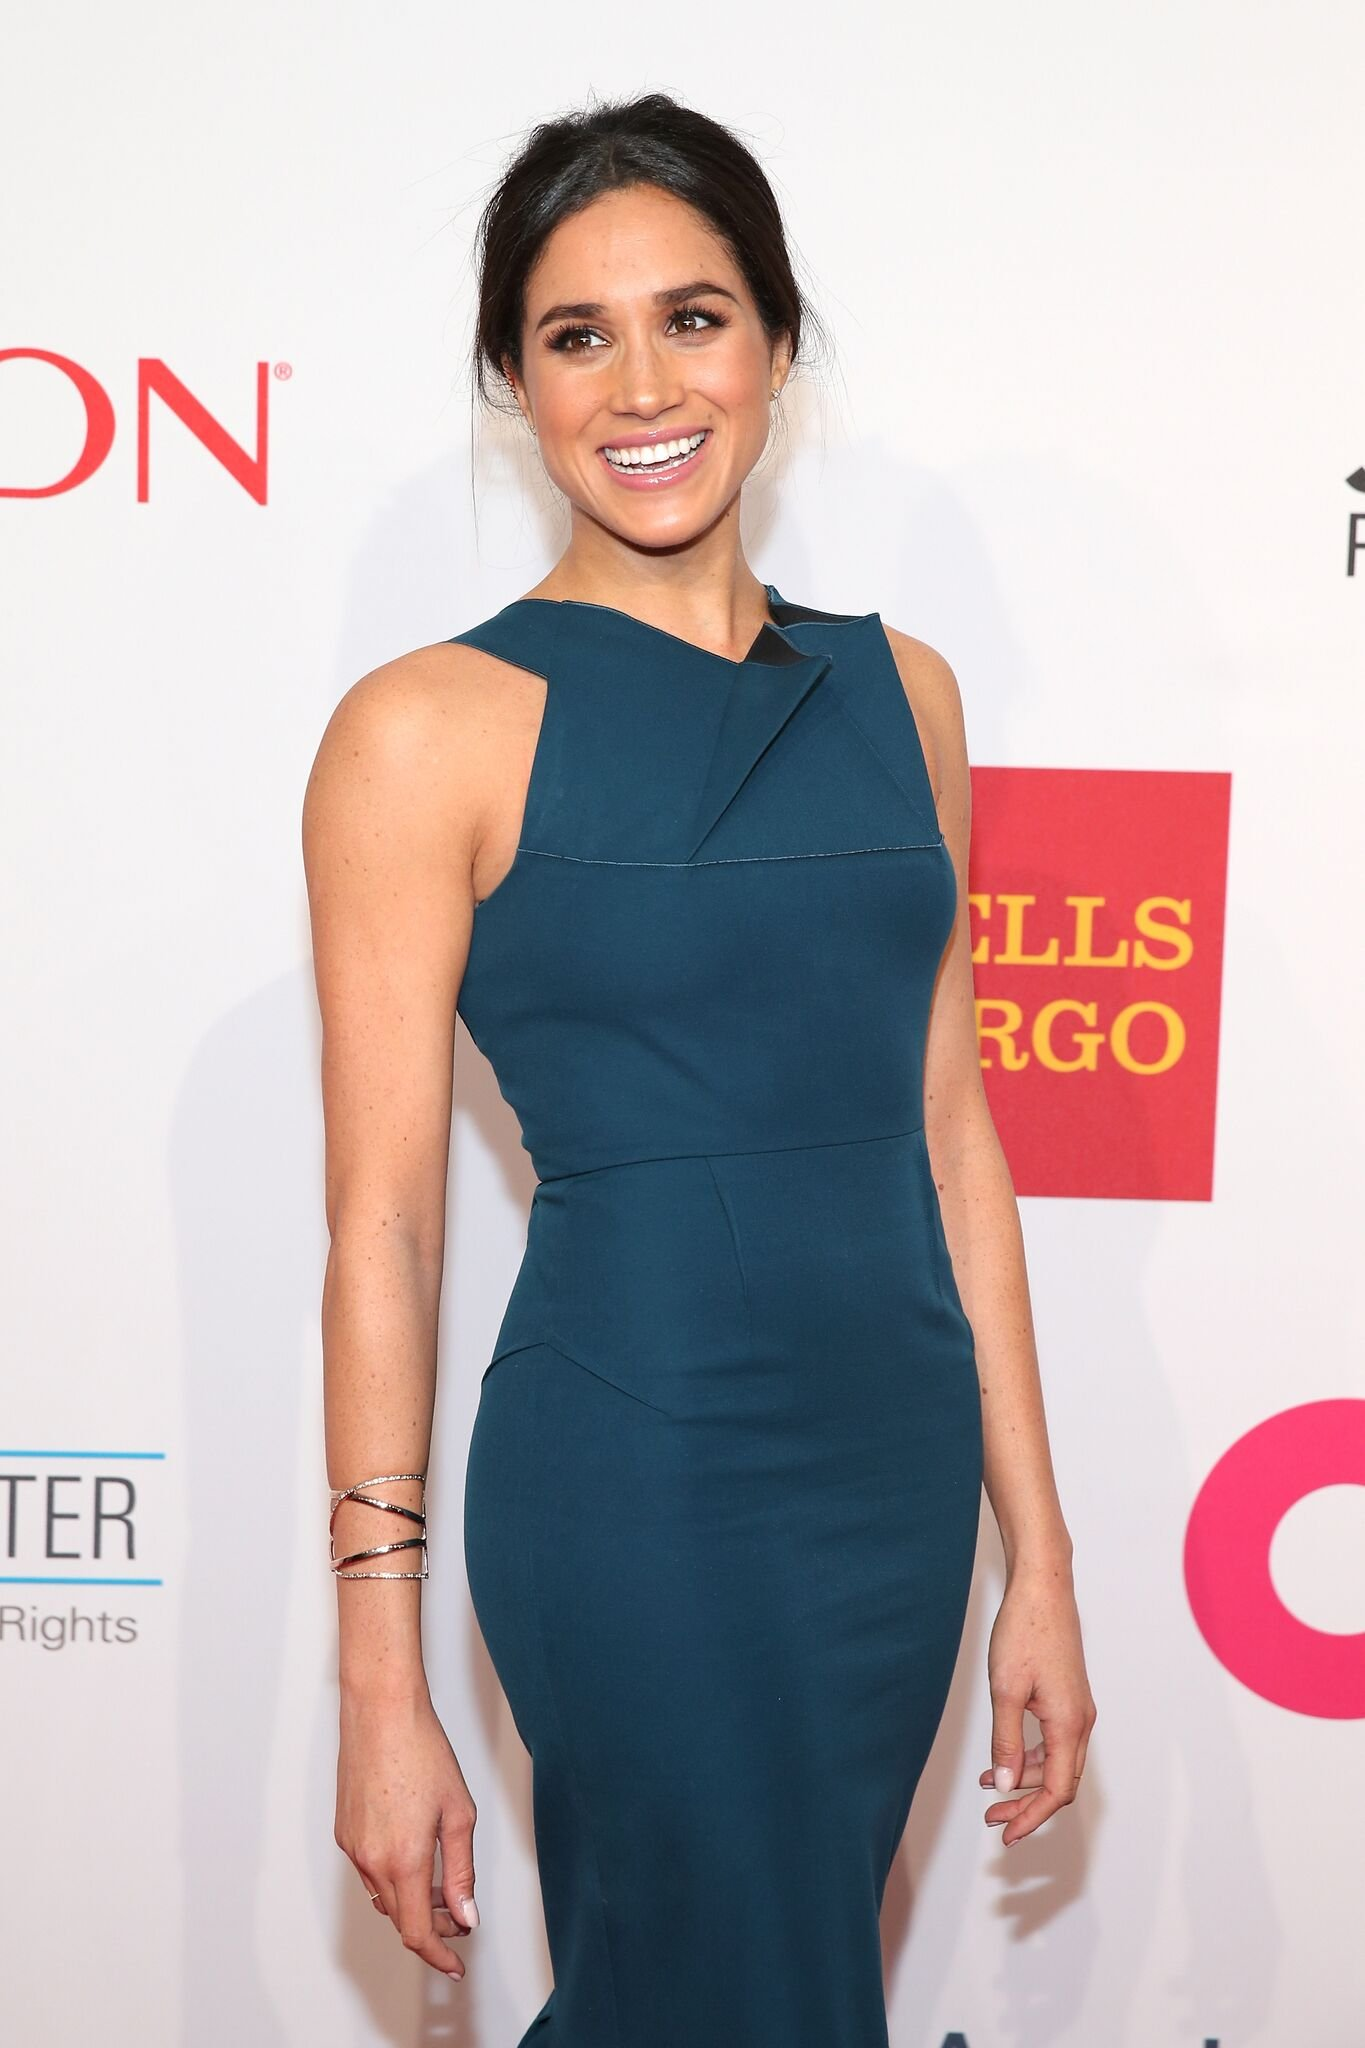 Model Meghan Markle attends the Elton John AIDS Foundation's 13th Annual An Enduring Vision Benefit at Cipriani Wall Street powered by CIROC Vodka Oct 28, 2014 | Photo: Getty Images